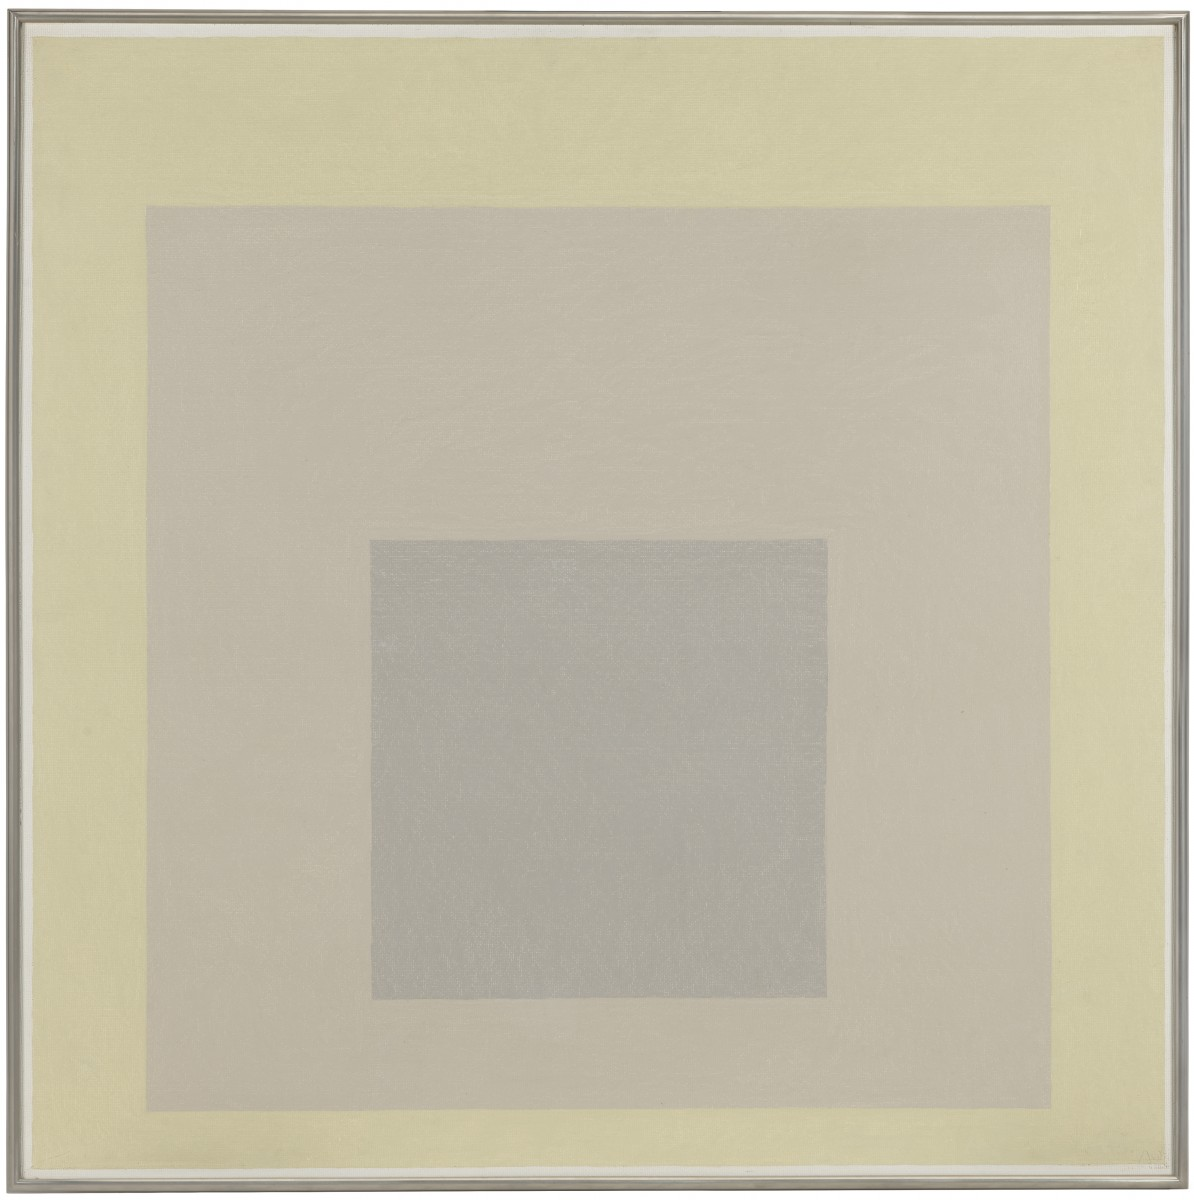 """Homage to the Square (It Seems),"" 1963, by Josef Albers. Oil on panel, 39 7/8 x 40 inches. © The Josef and Anni Albers Foundation / Artists Rights Society (ARS), New York. Gift of the Friends of the Philadelphia Museum of Art, 1968. Image courtesy of Philadelphia Museum of Art, 2019."